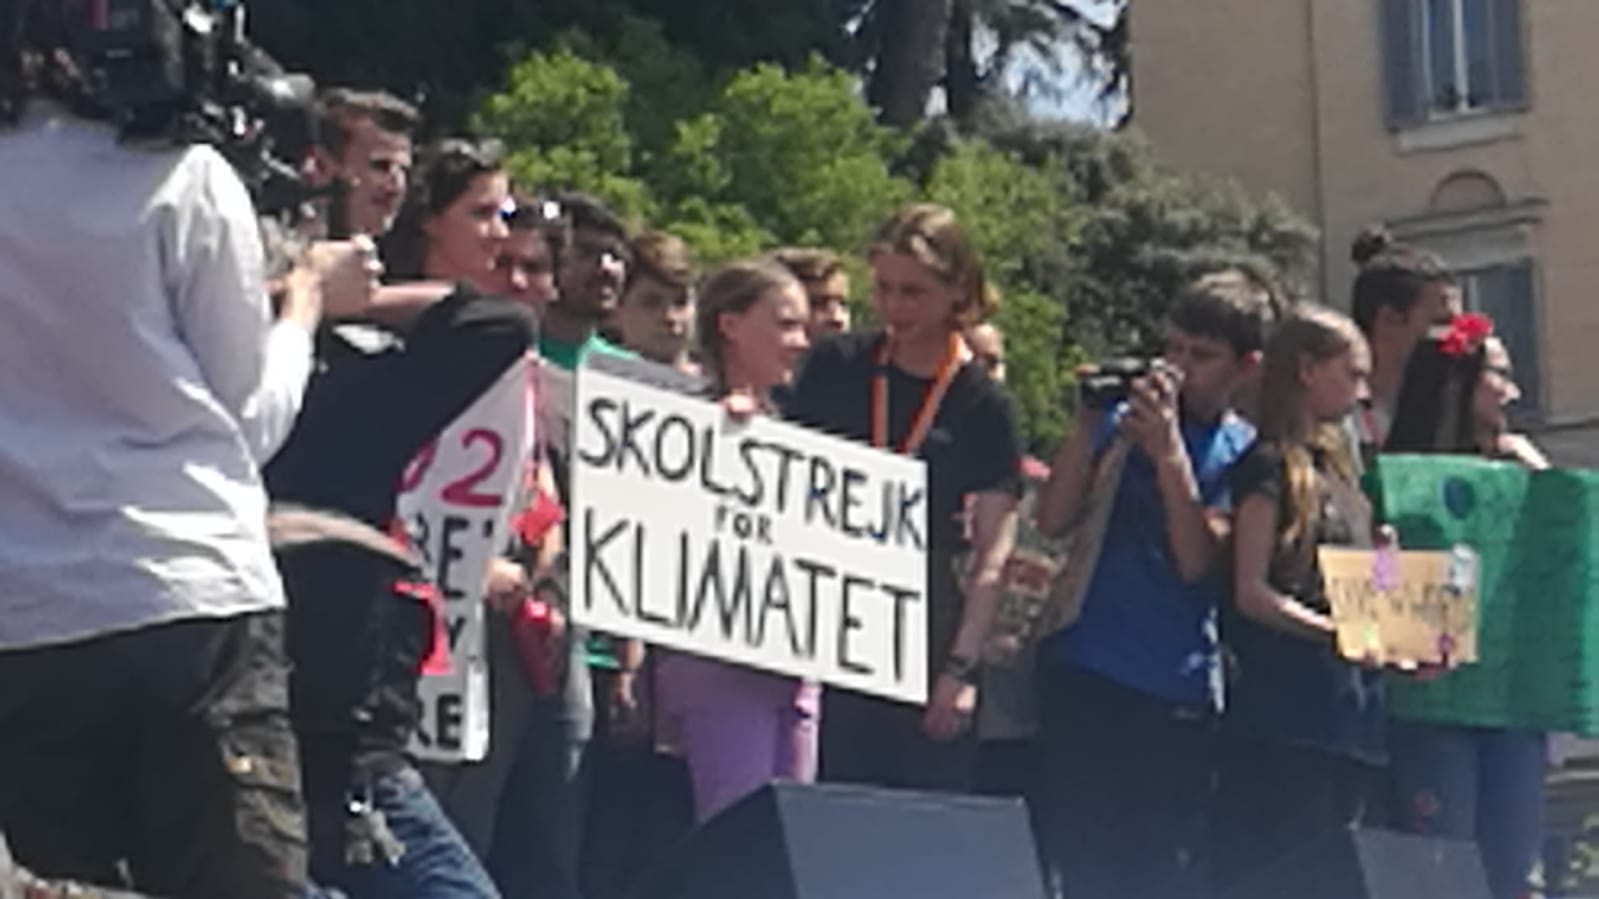 2-fridaysforfuture-Ecofoodfertility-16-04-19-2